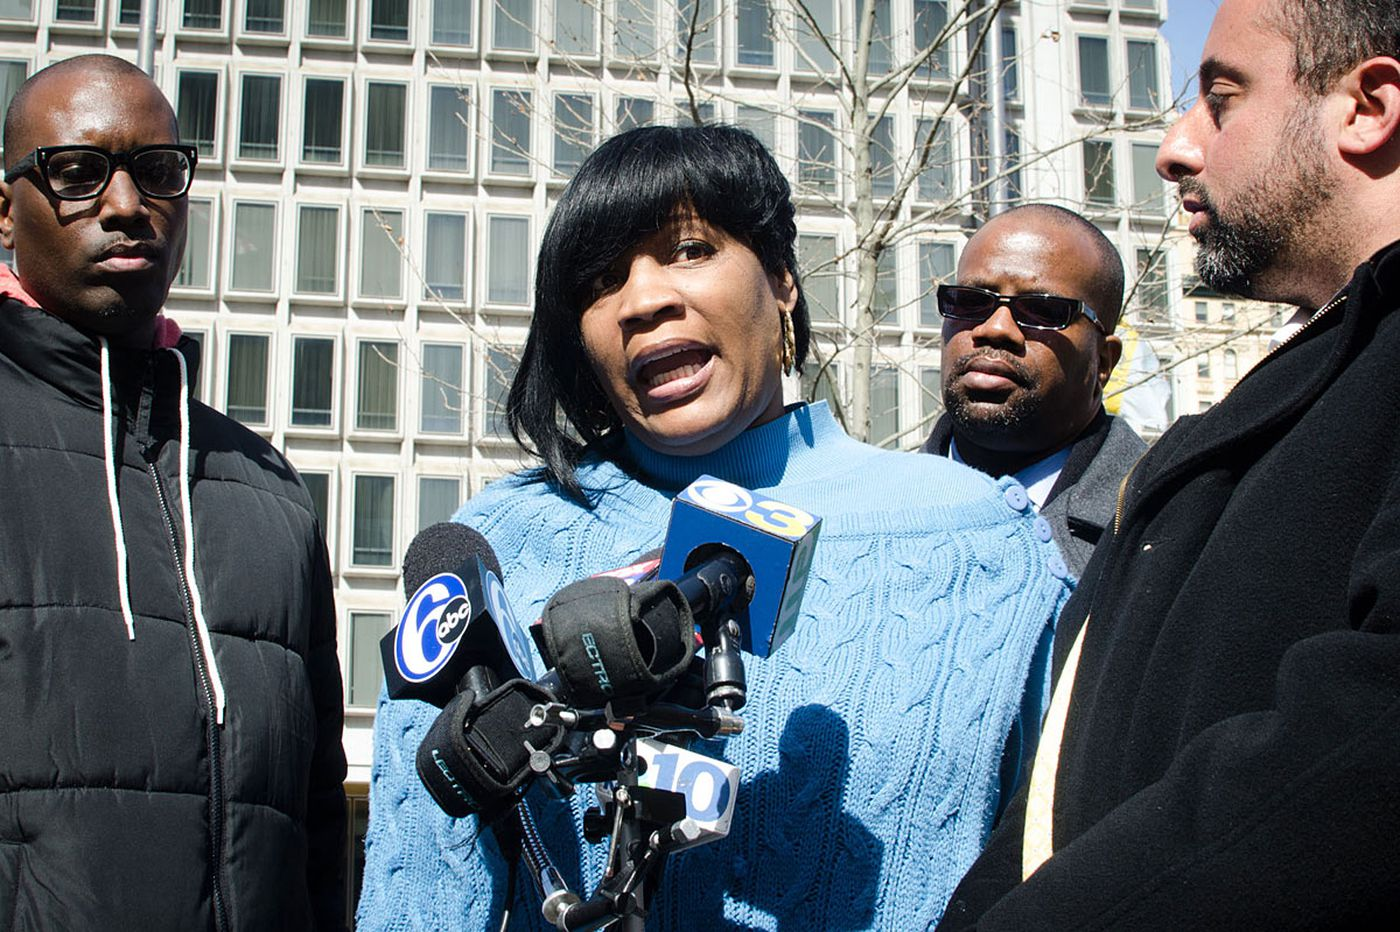 A year later, mother grieves over police shooting